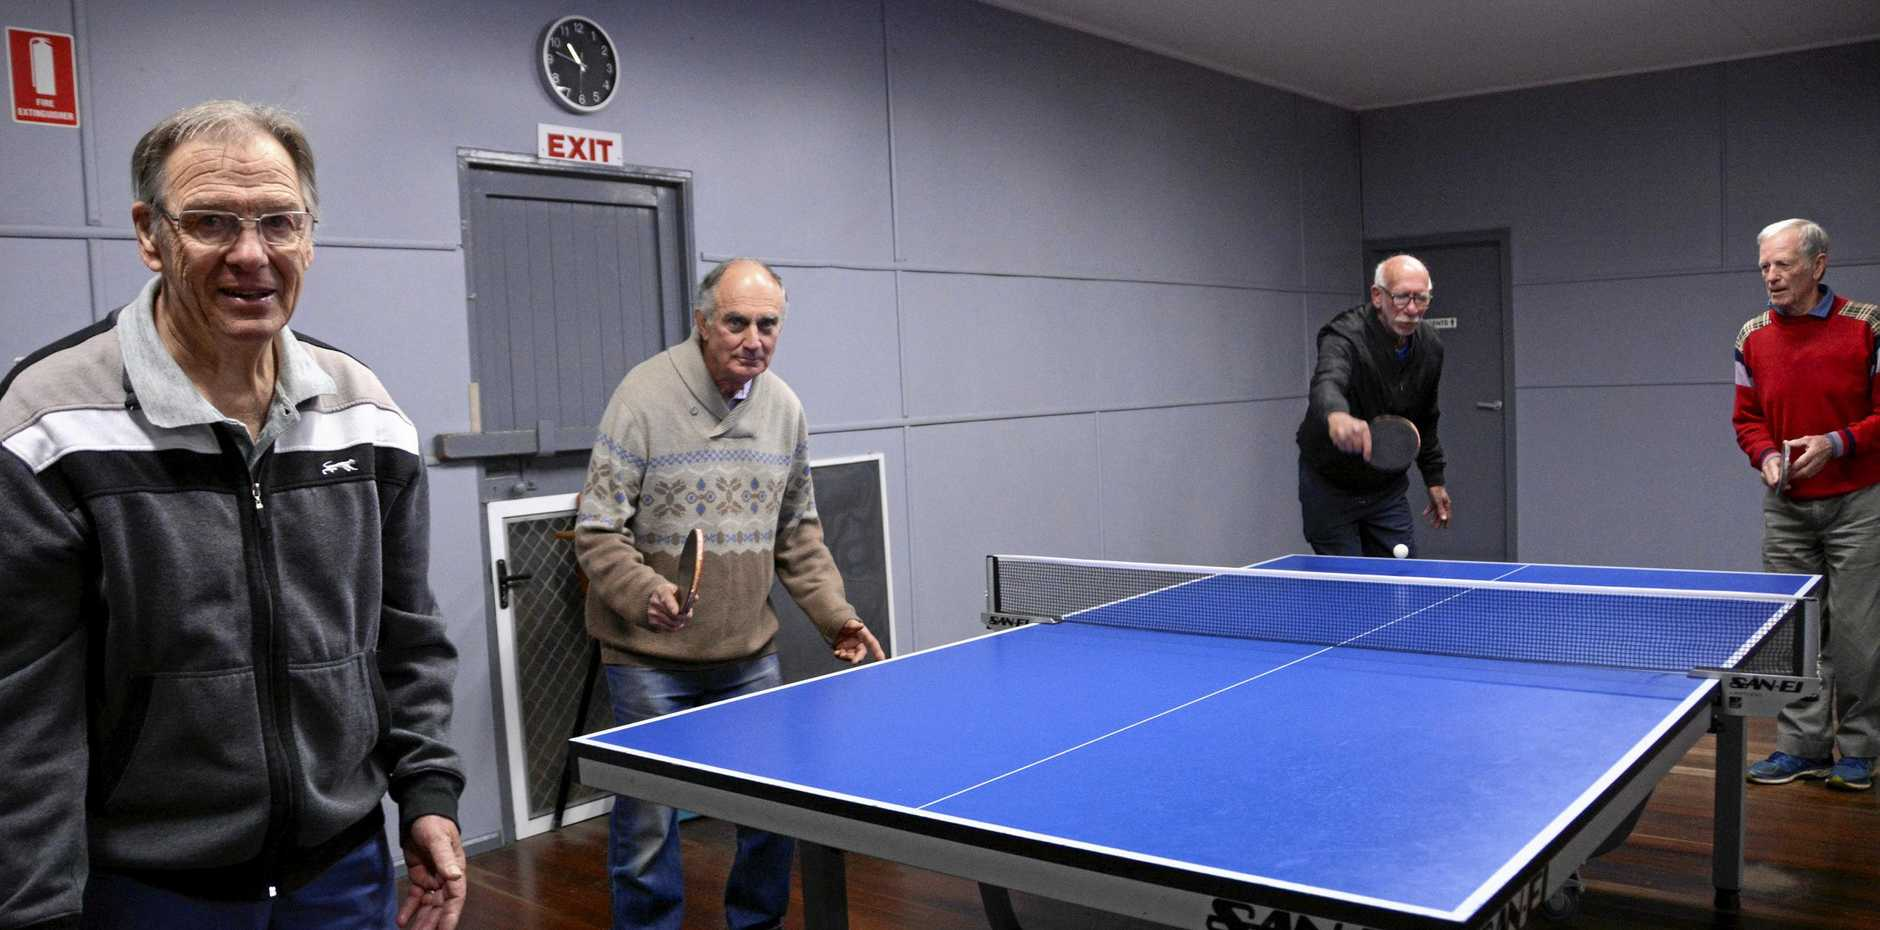 WHAT A RACKET: Enjoying a social game at the Toowoomba Table Tennis Association hall are (from left) Des Venz, David Andrew, Lee Brittian and Doug Mackintosh. The association is open to social and fixture games from Monday to Saturday. Visit toowoombatabletennis.club for more details.